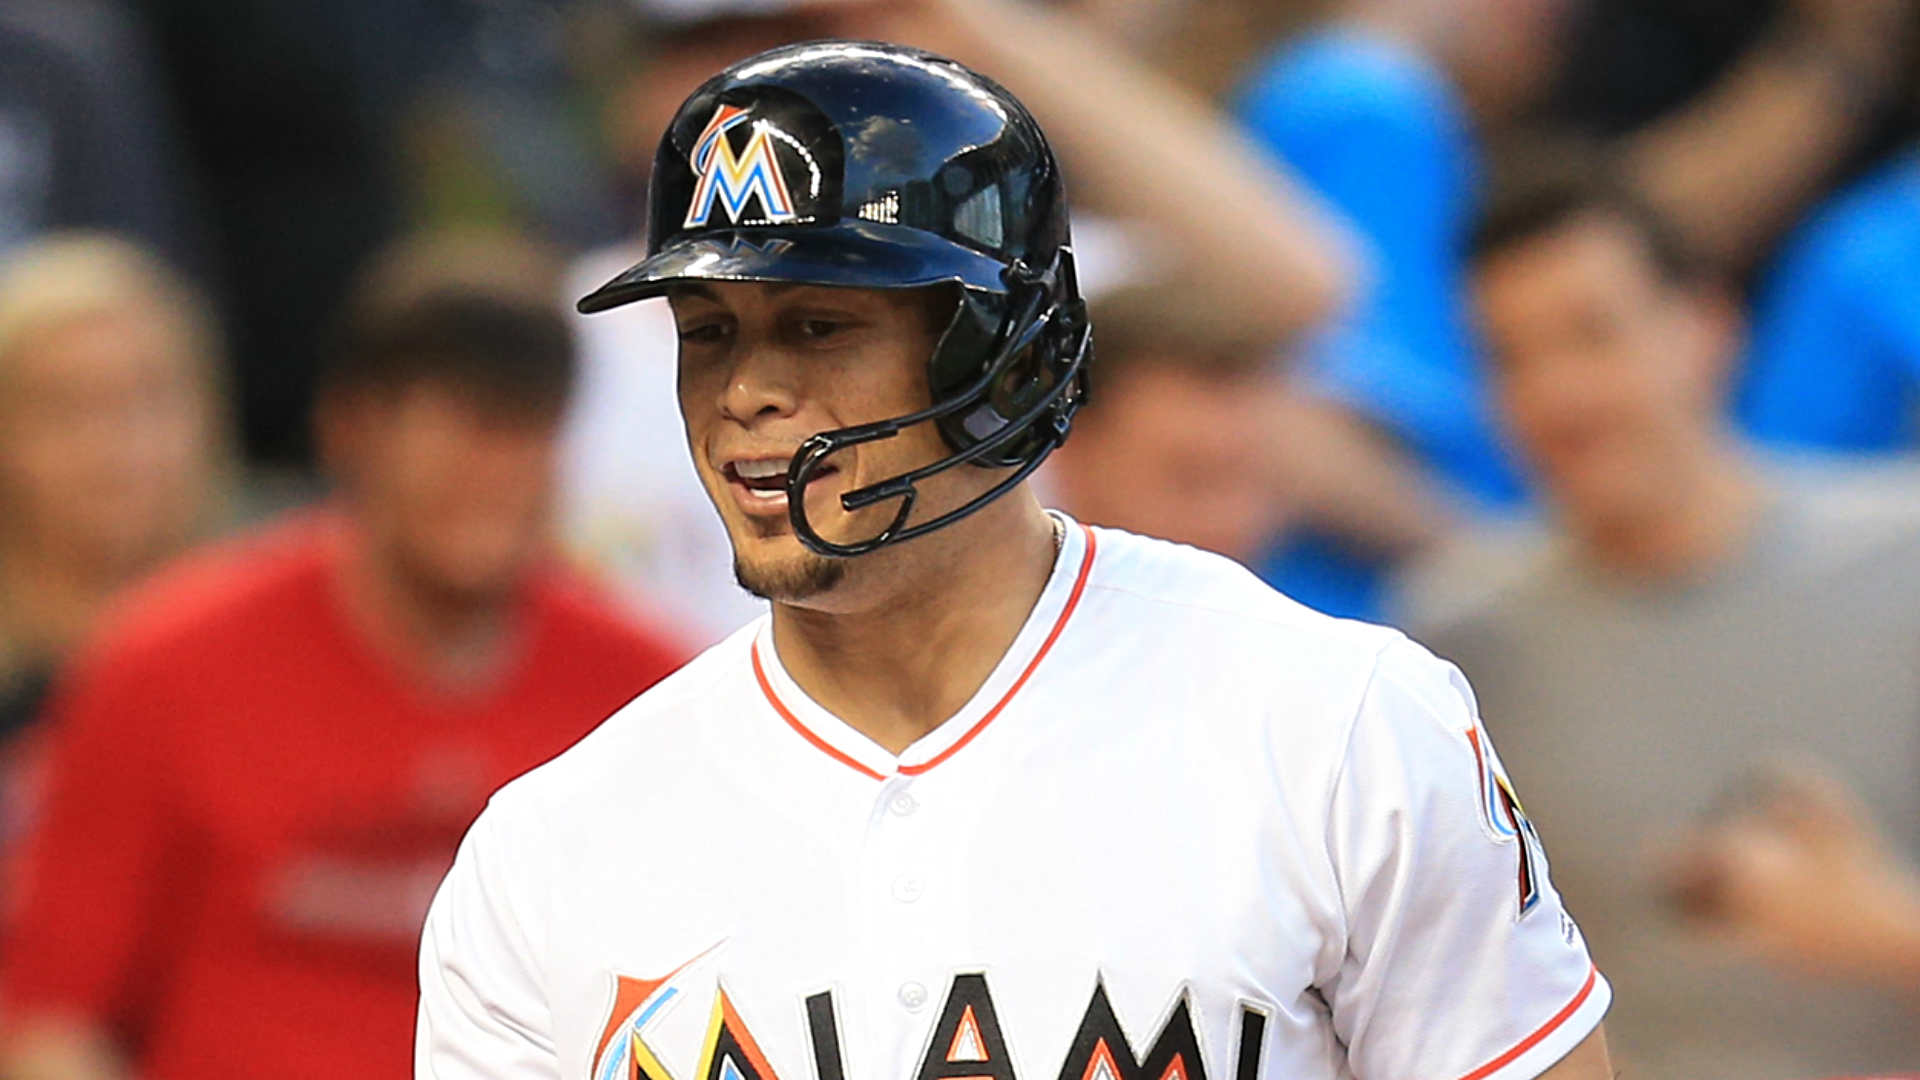 MLB trade rumors: Giants expect decision on Giancarlo Stanton by end of week